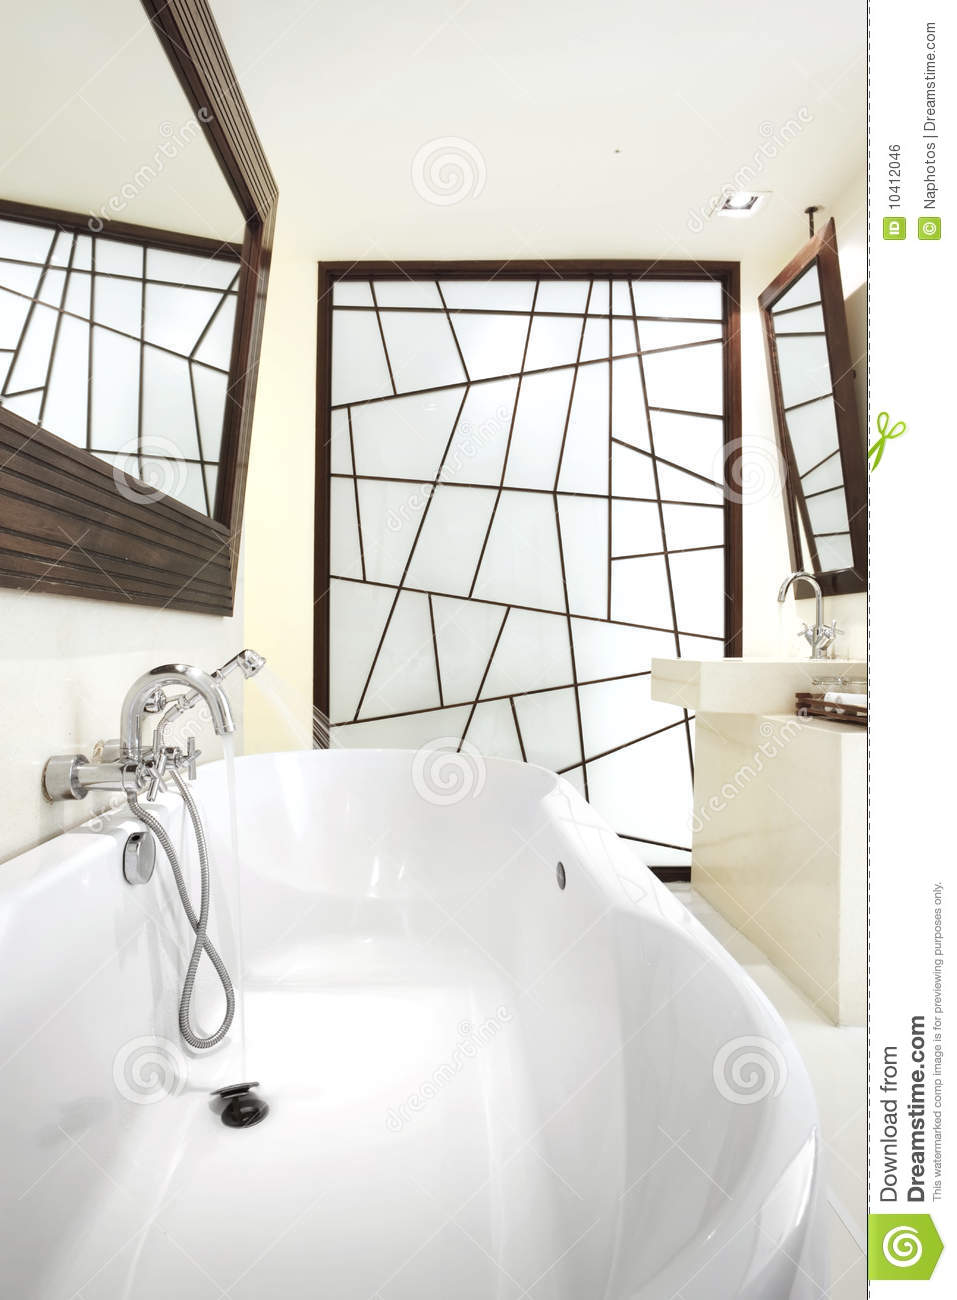 bathroom with graphic design stock photo image 10412046